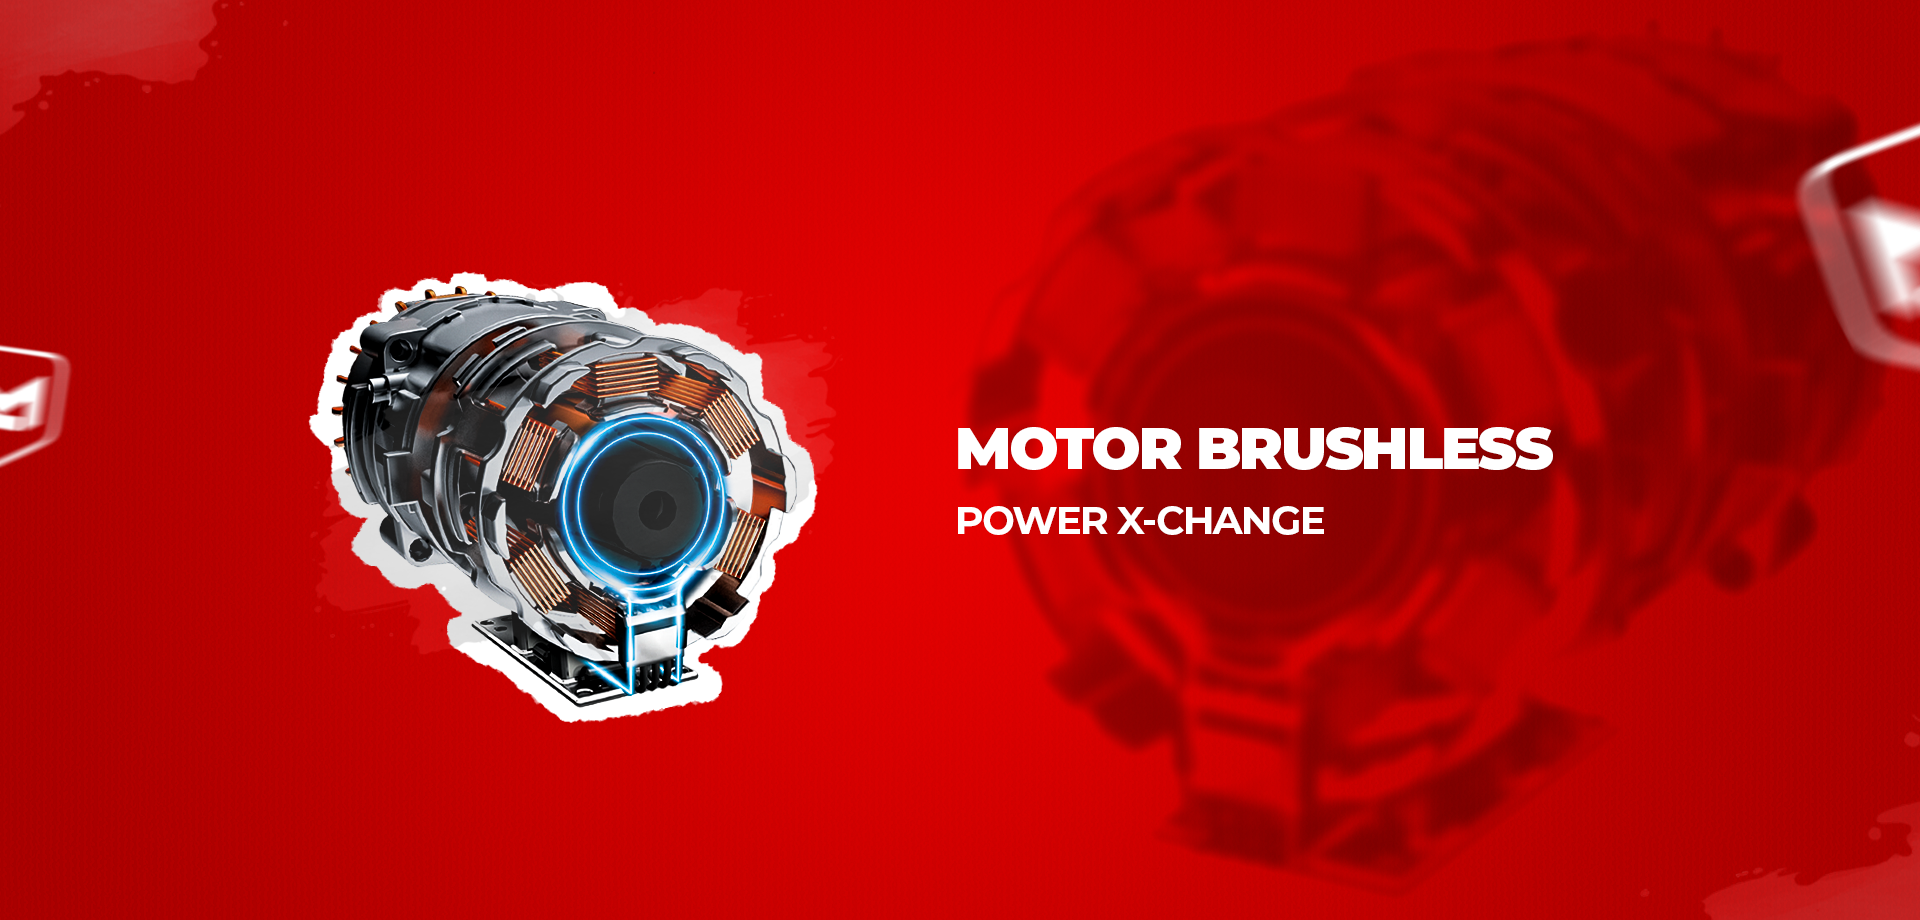 Motor Brushless | Einhell